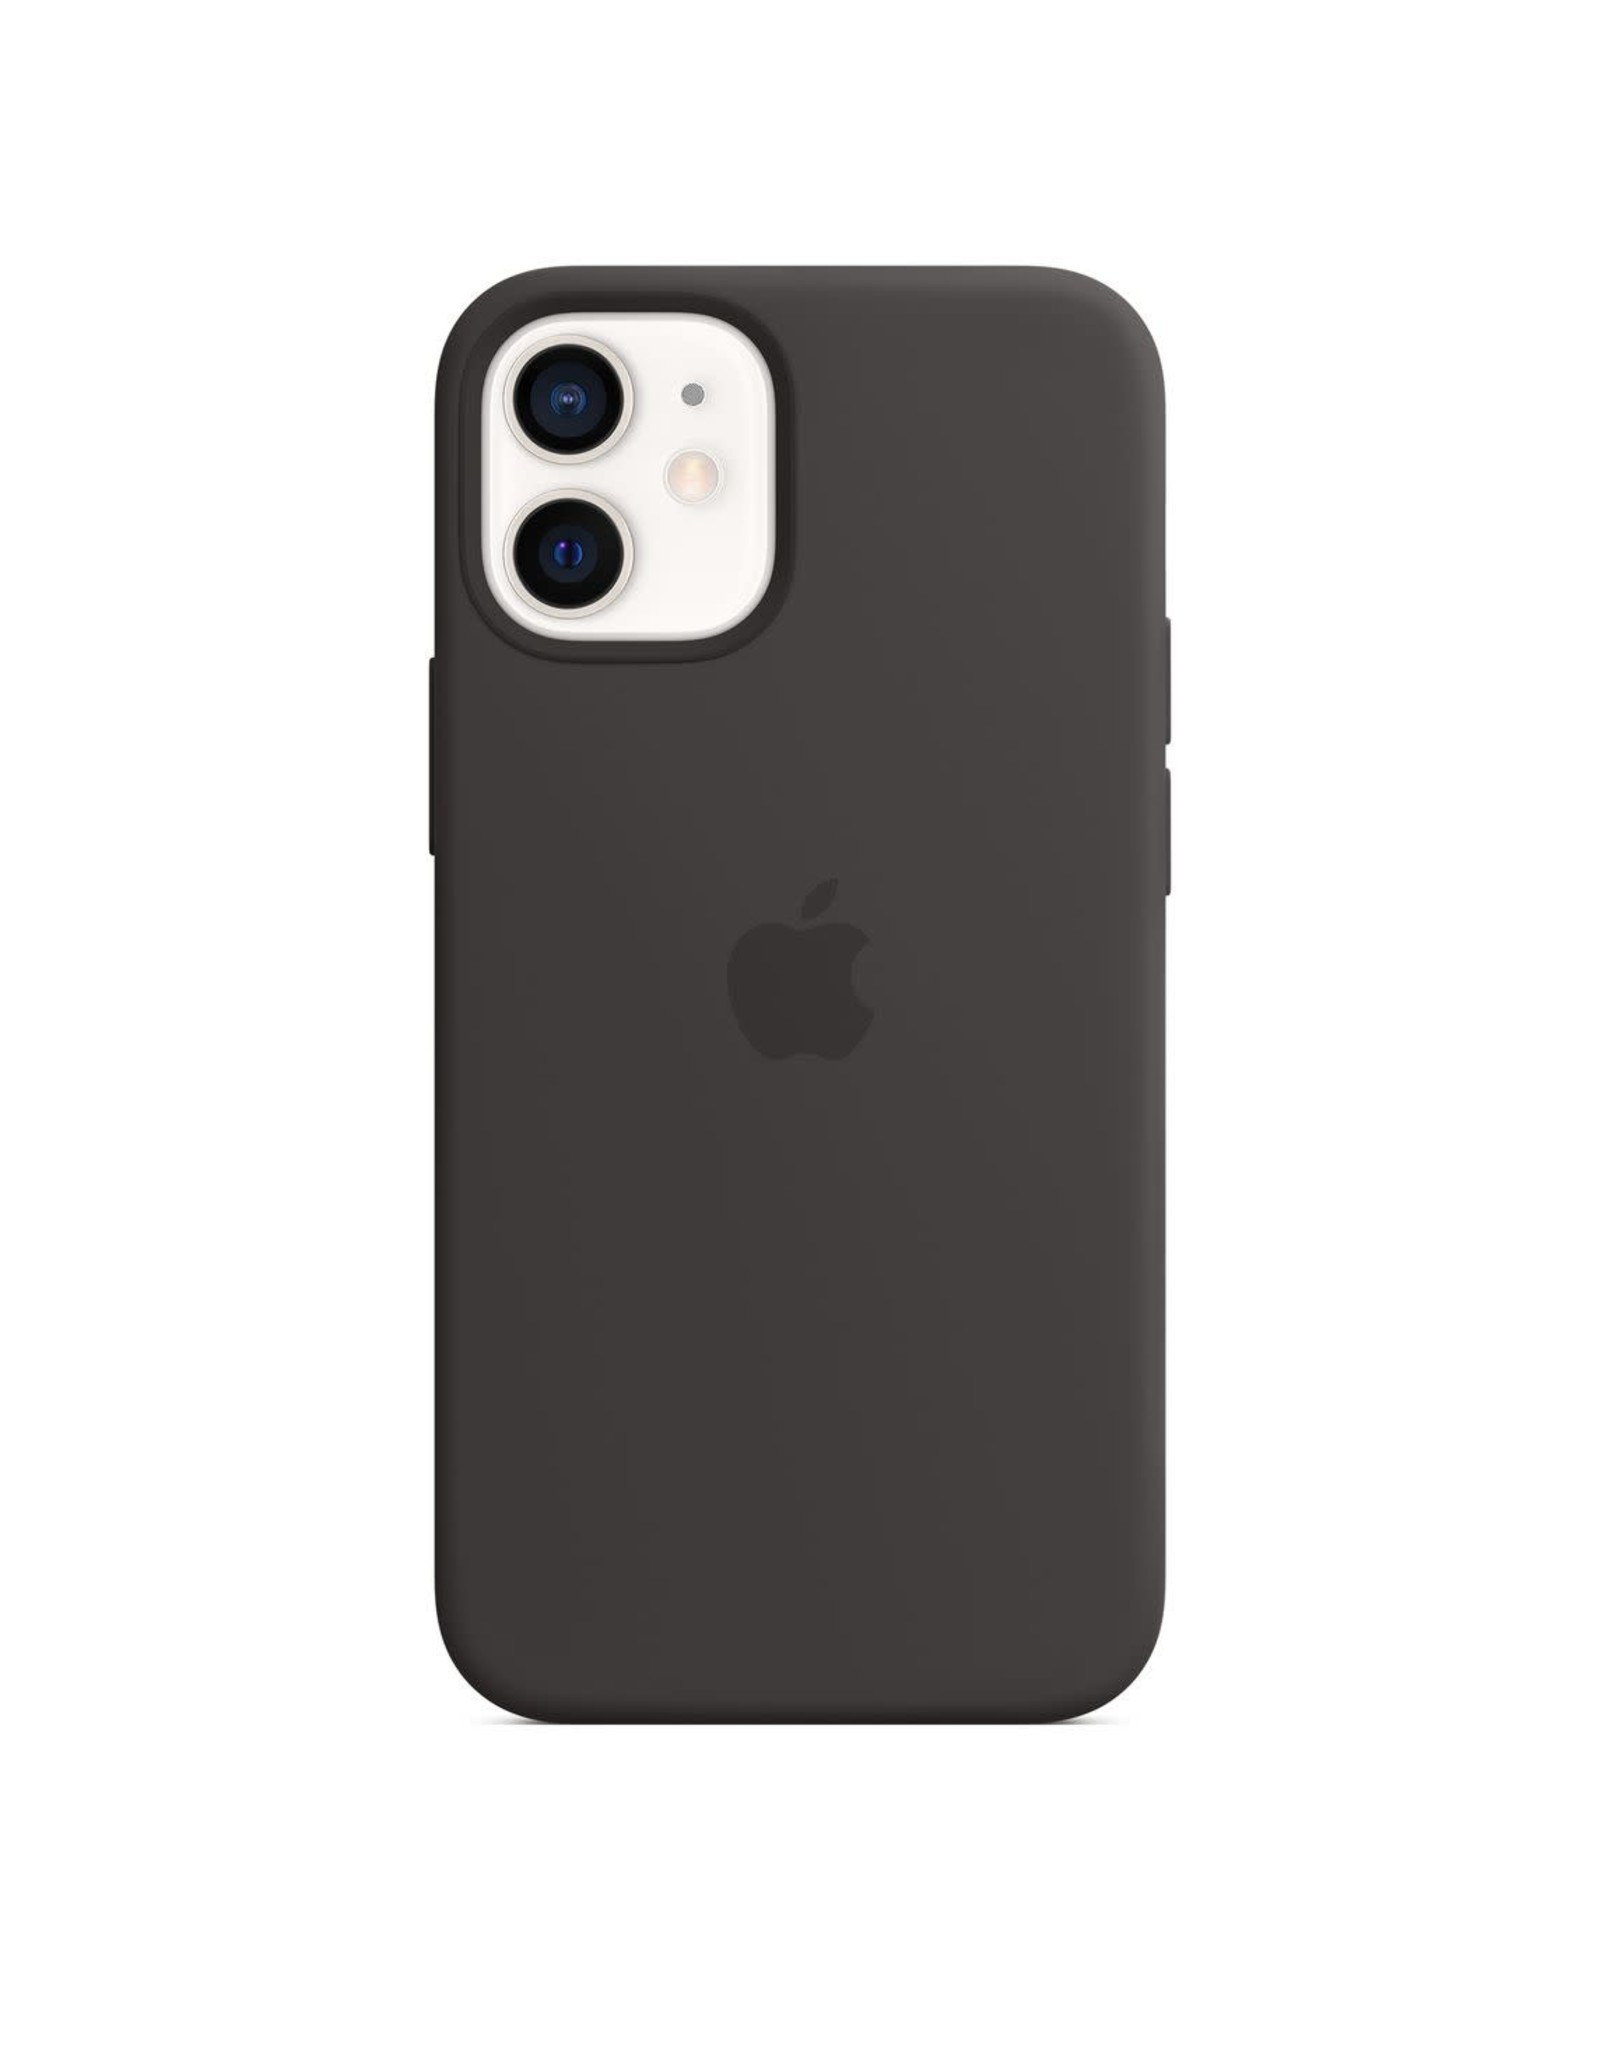 Apple iPhone 12 mini Case with MagSafe